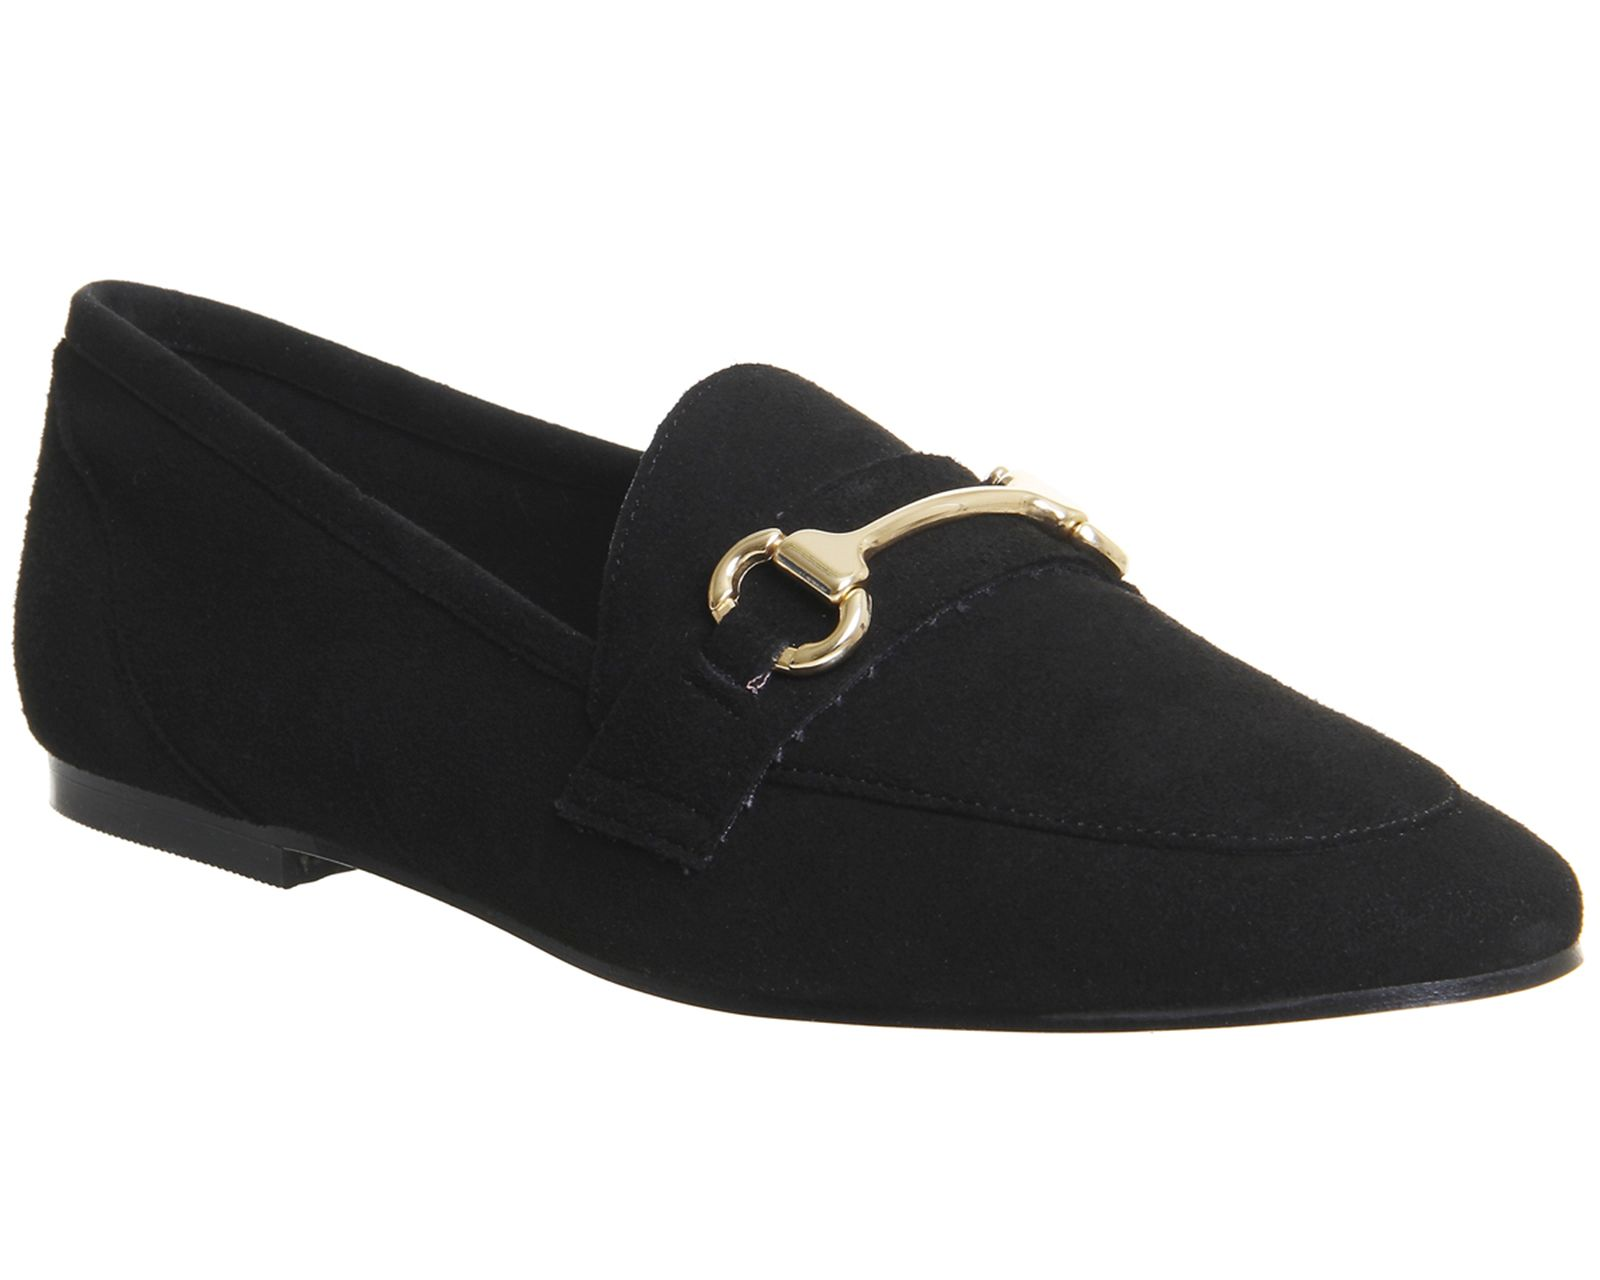 Office Destiny Trim Loafers, Black Suede